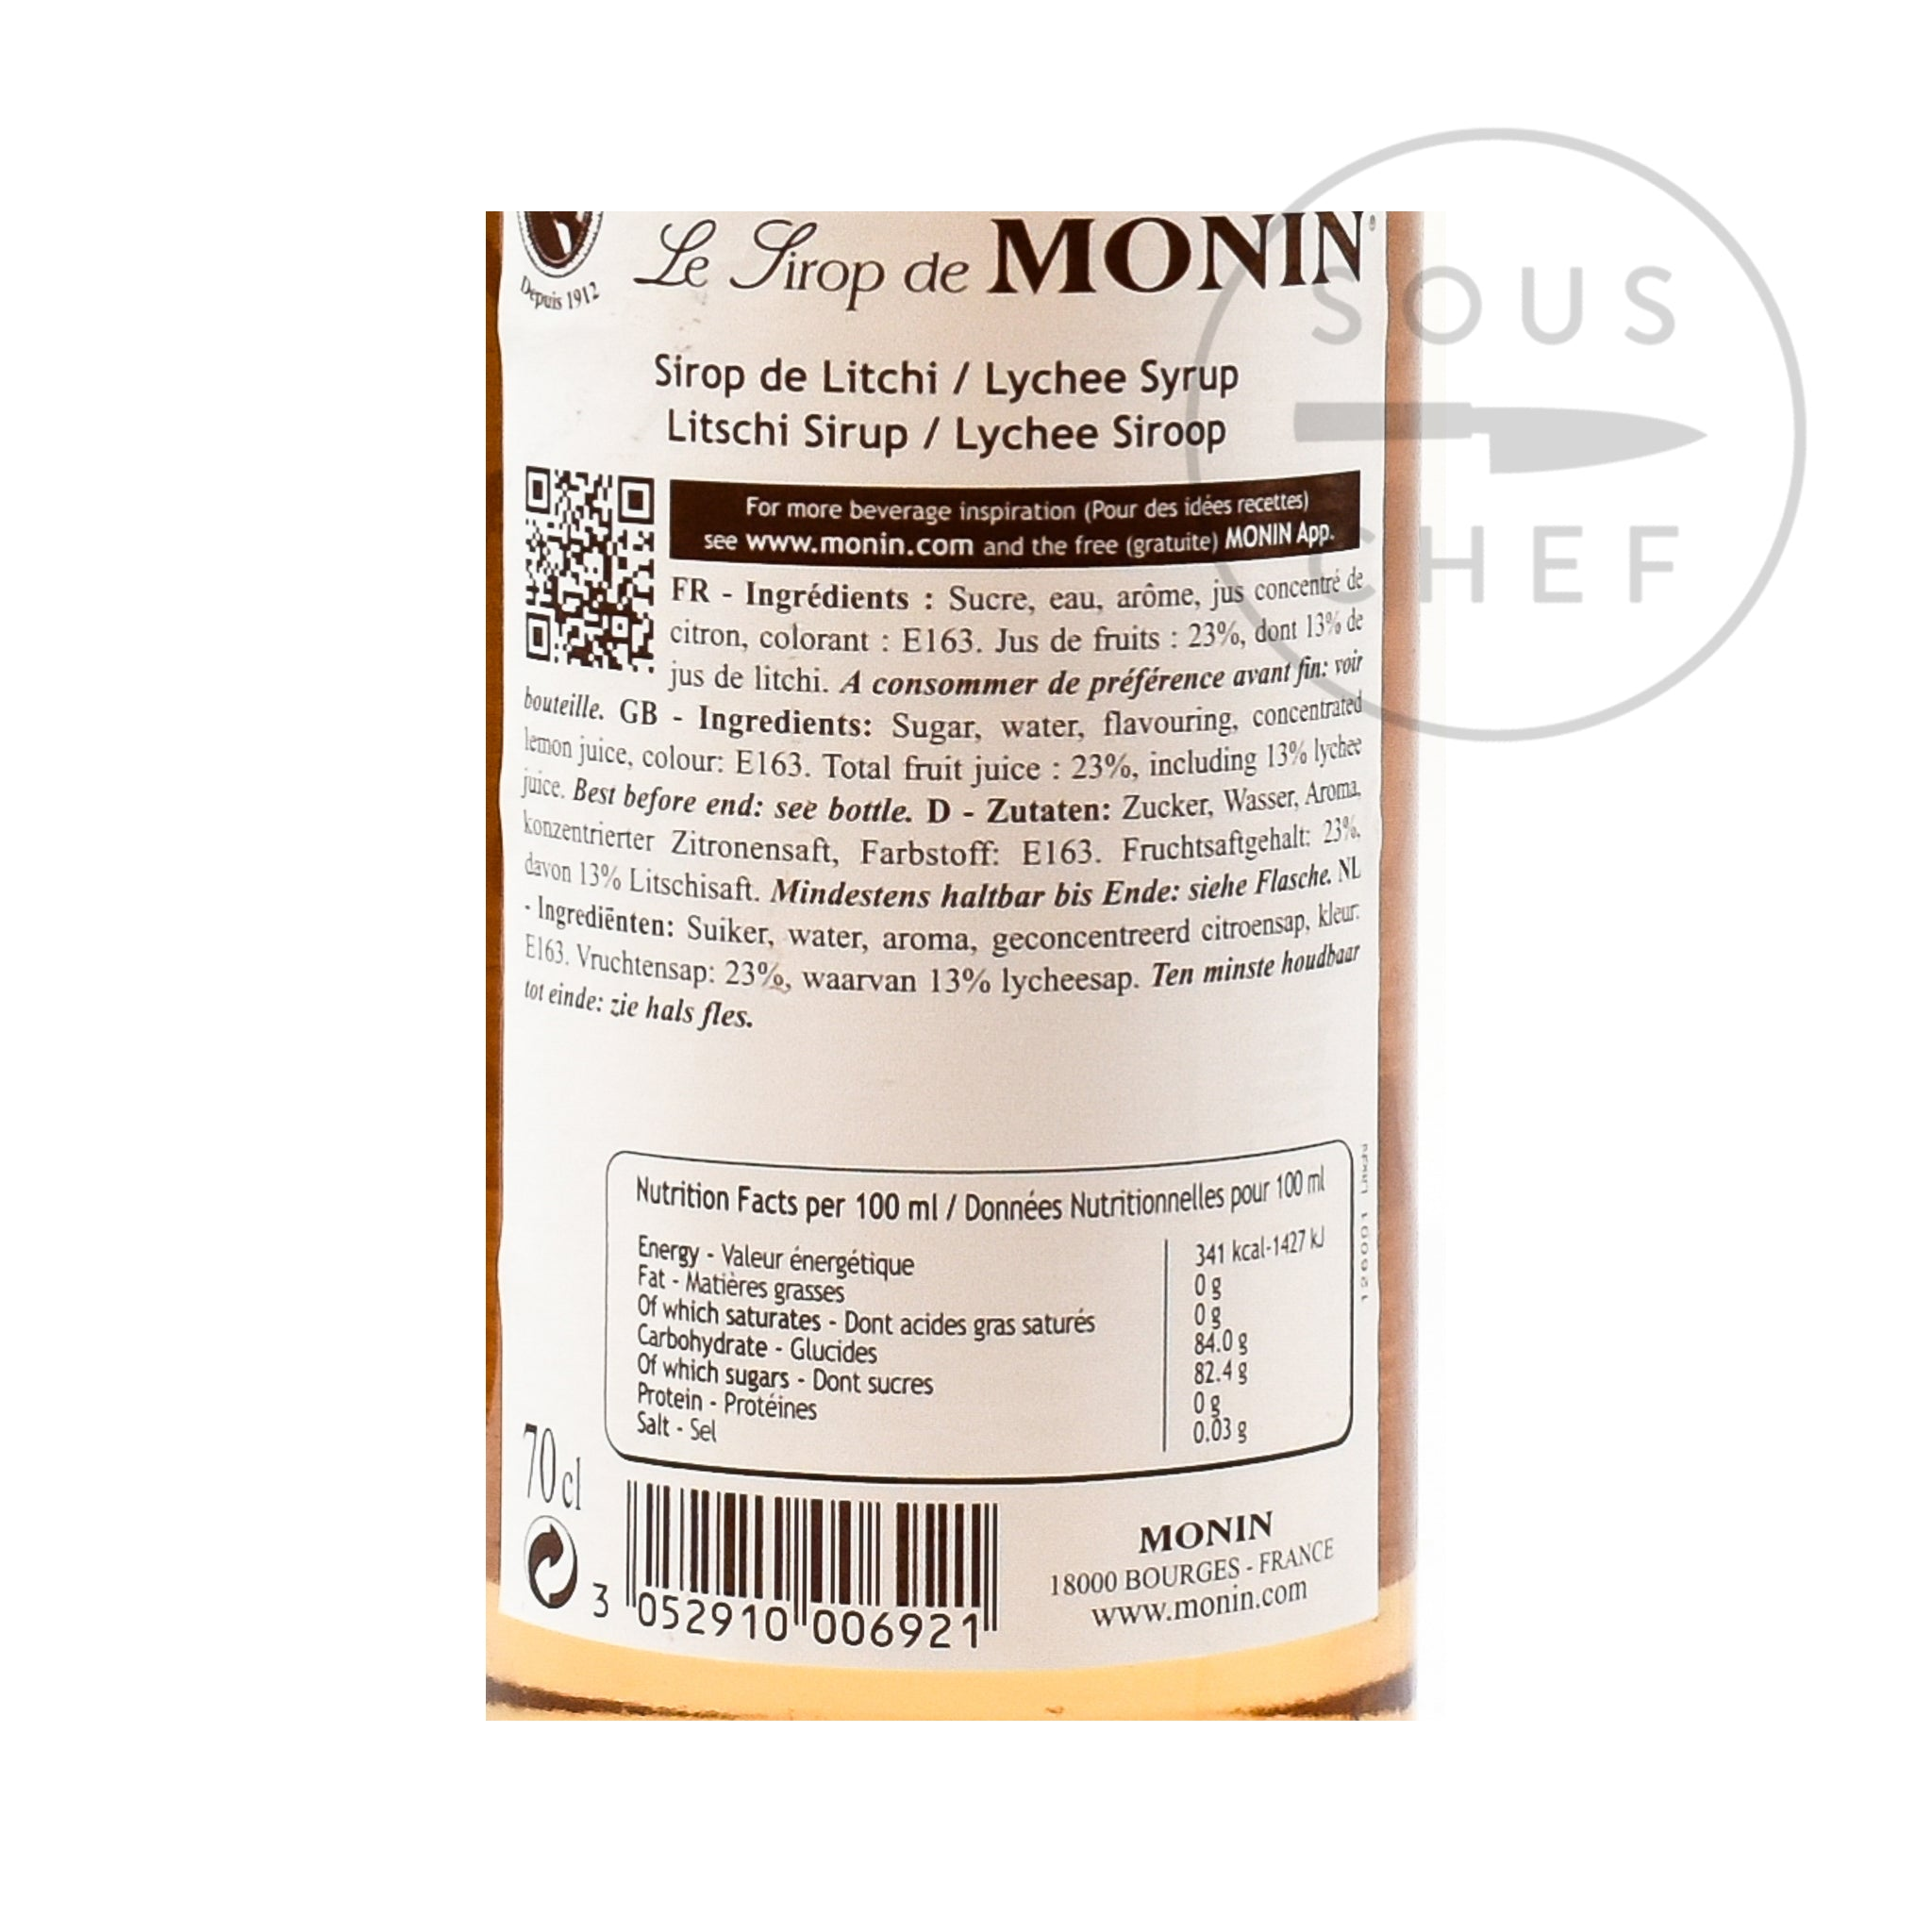 Monin Lychee Syrup 70cl nutritional information ingredients